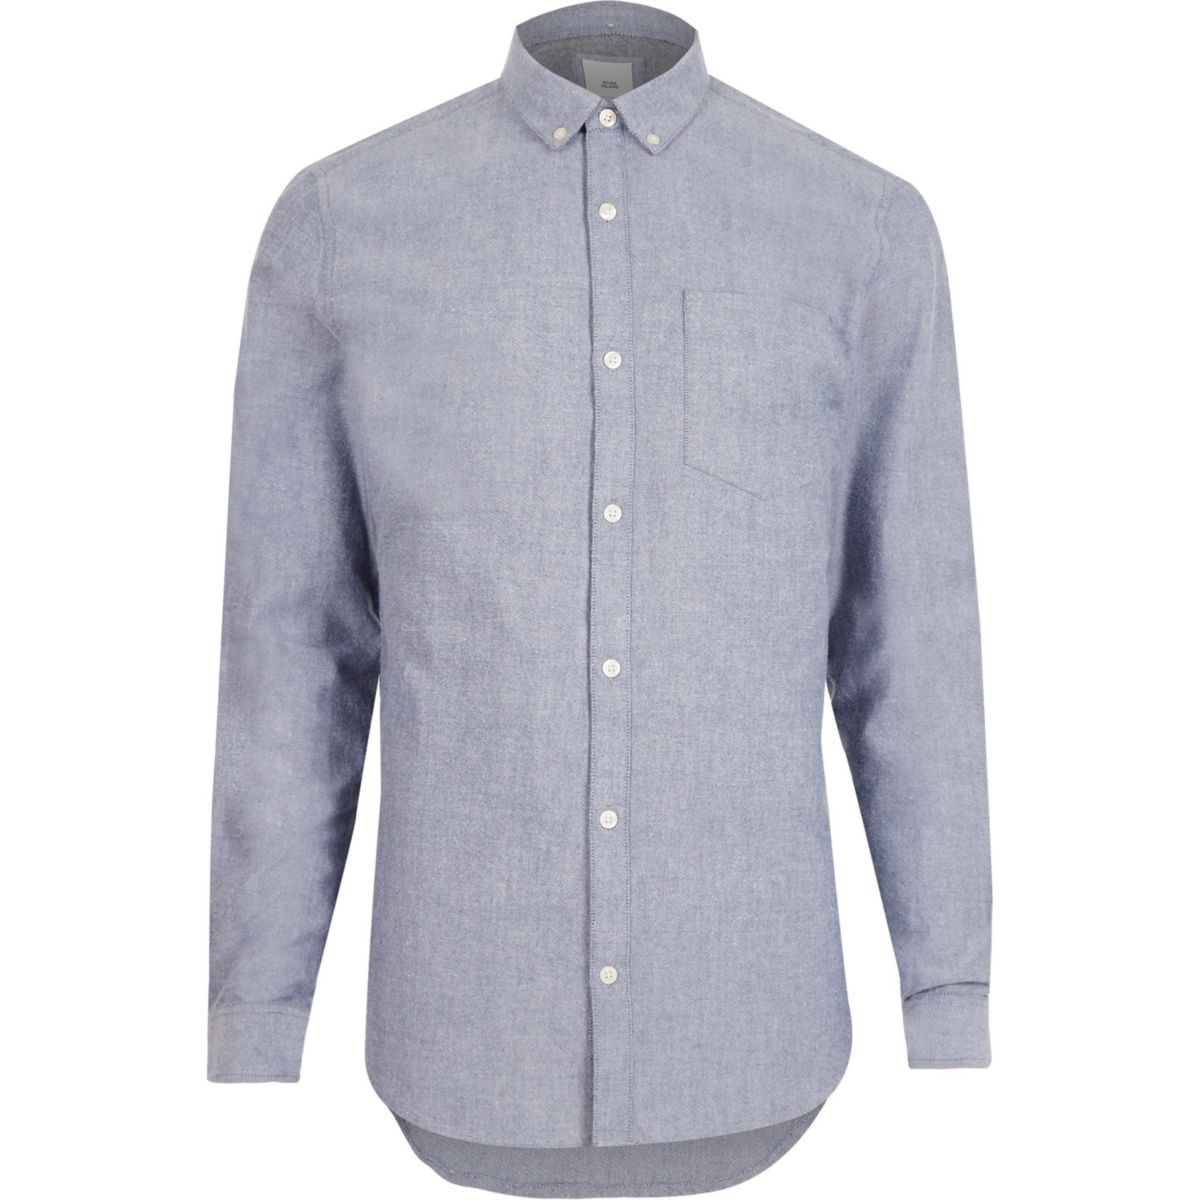 Light blue slim fit long sleeve Oxford shirt